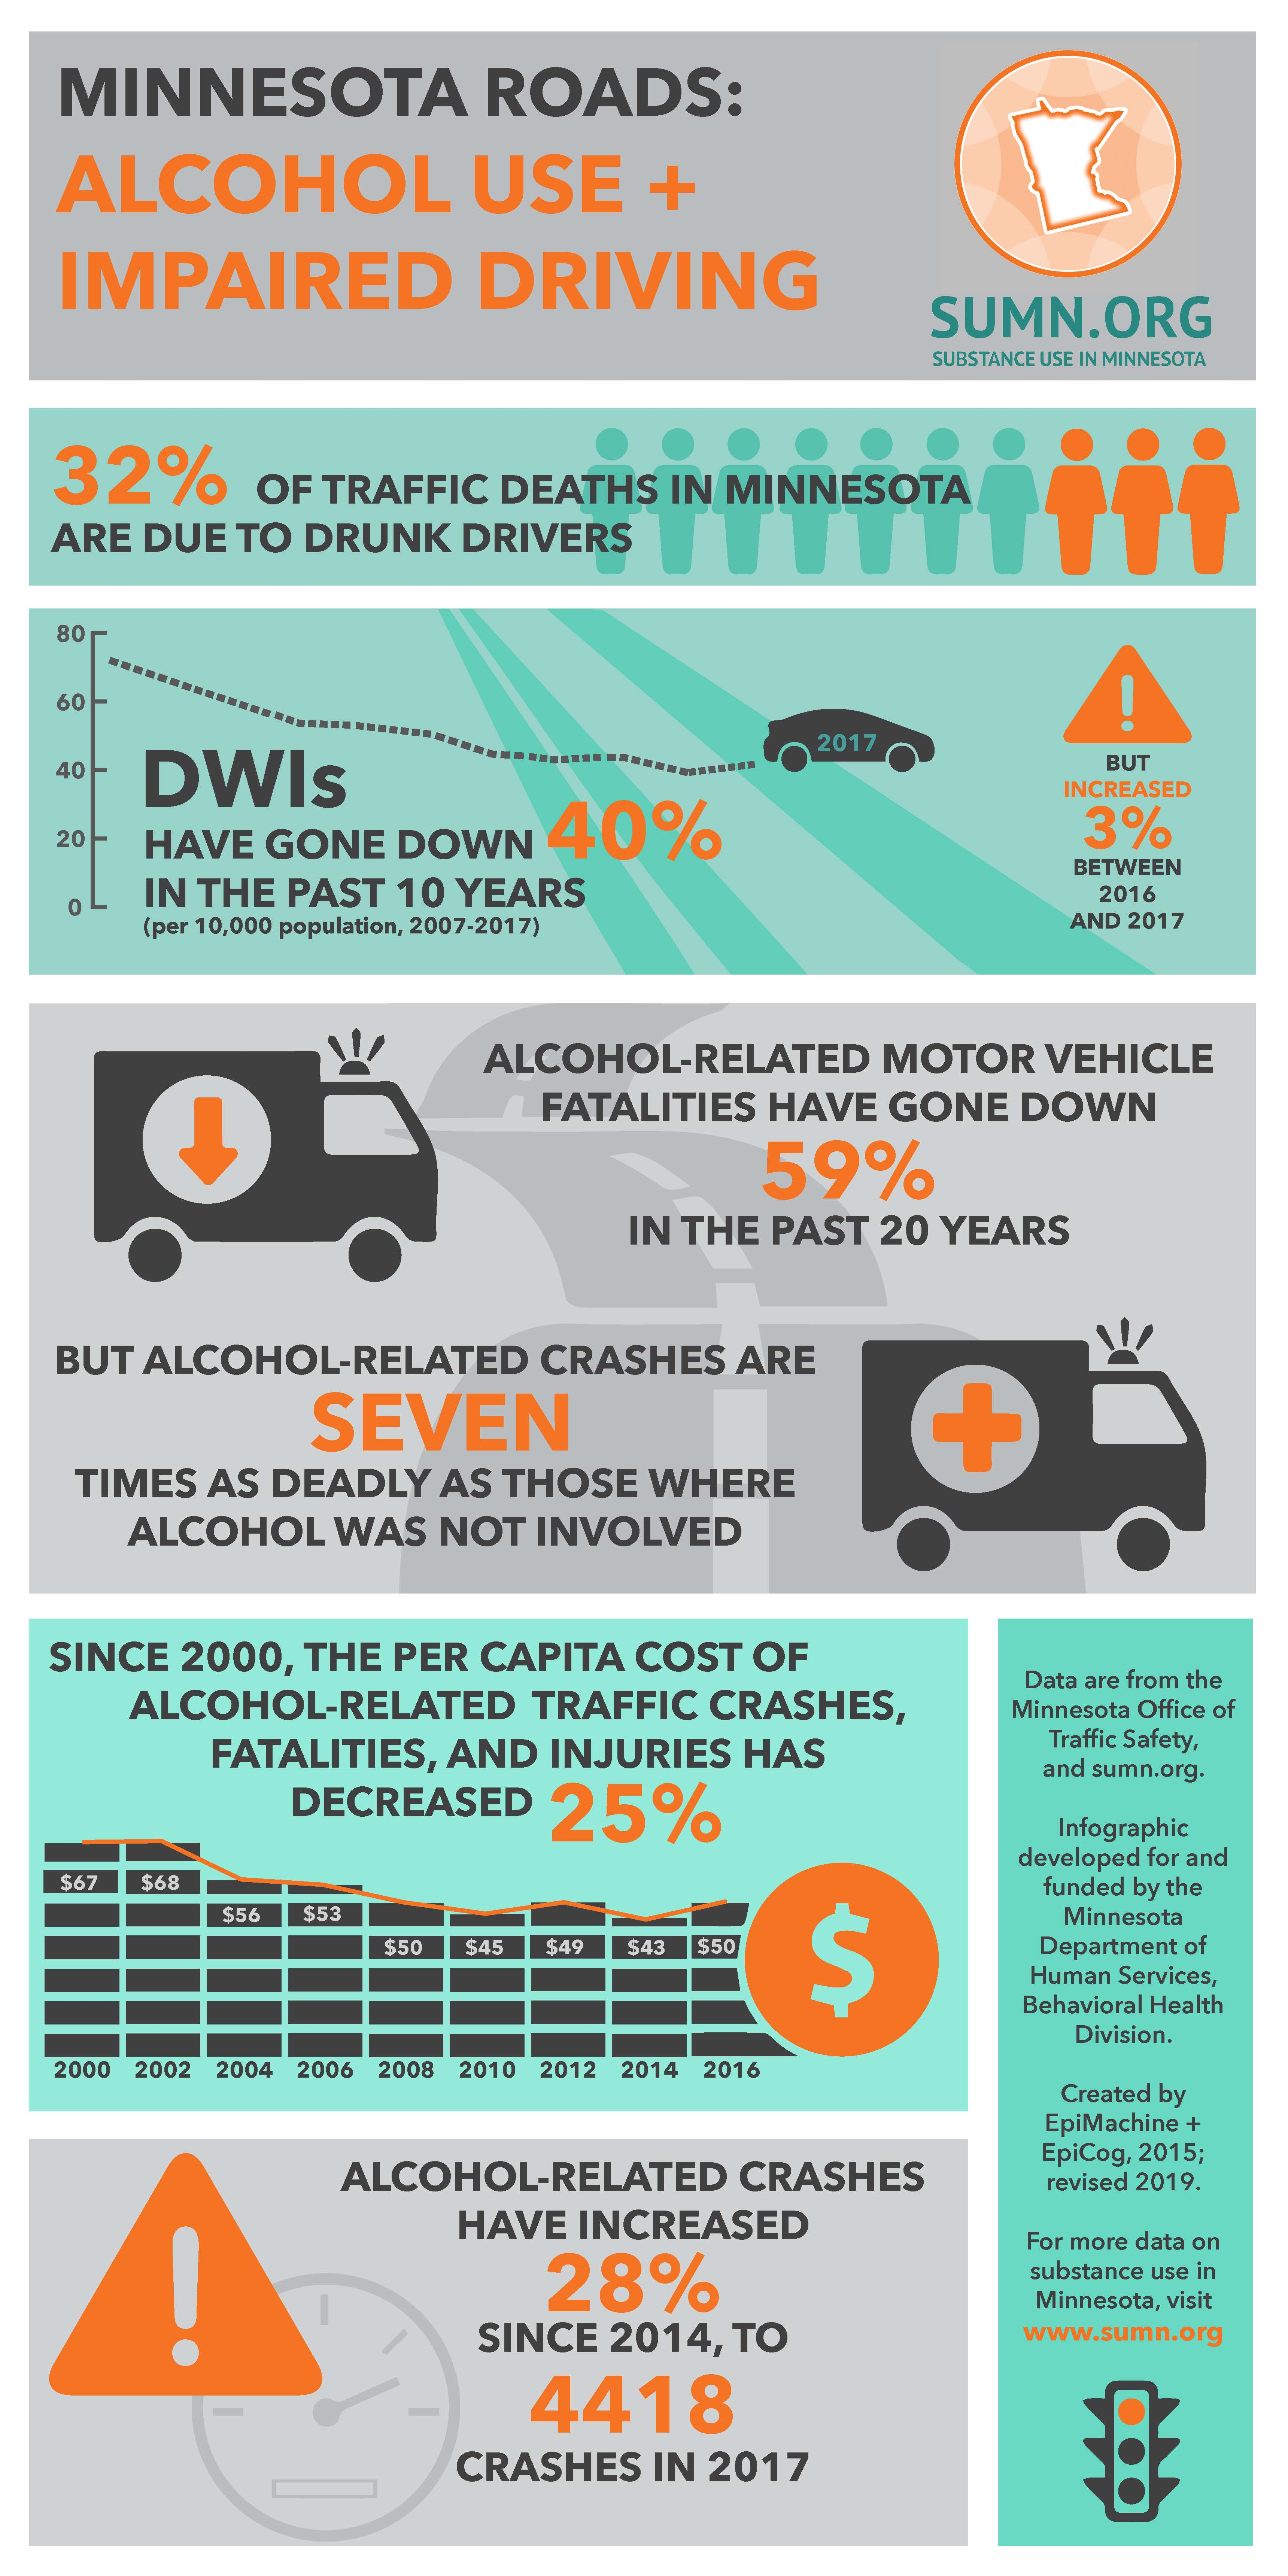 jpg version of the MN Traffic Facts infographic